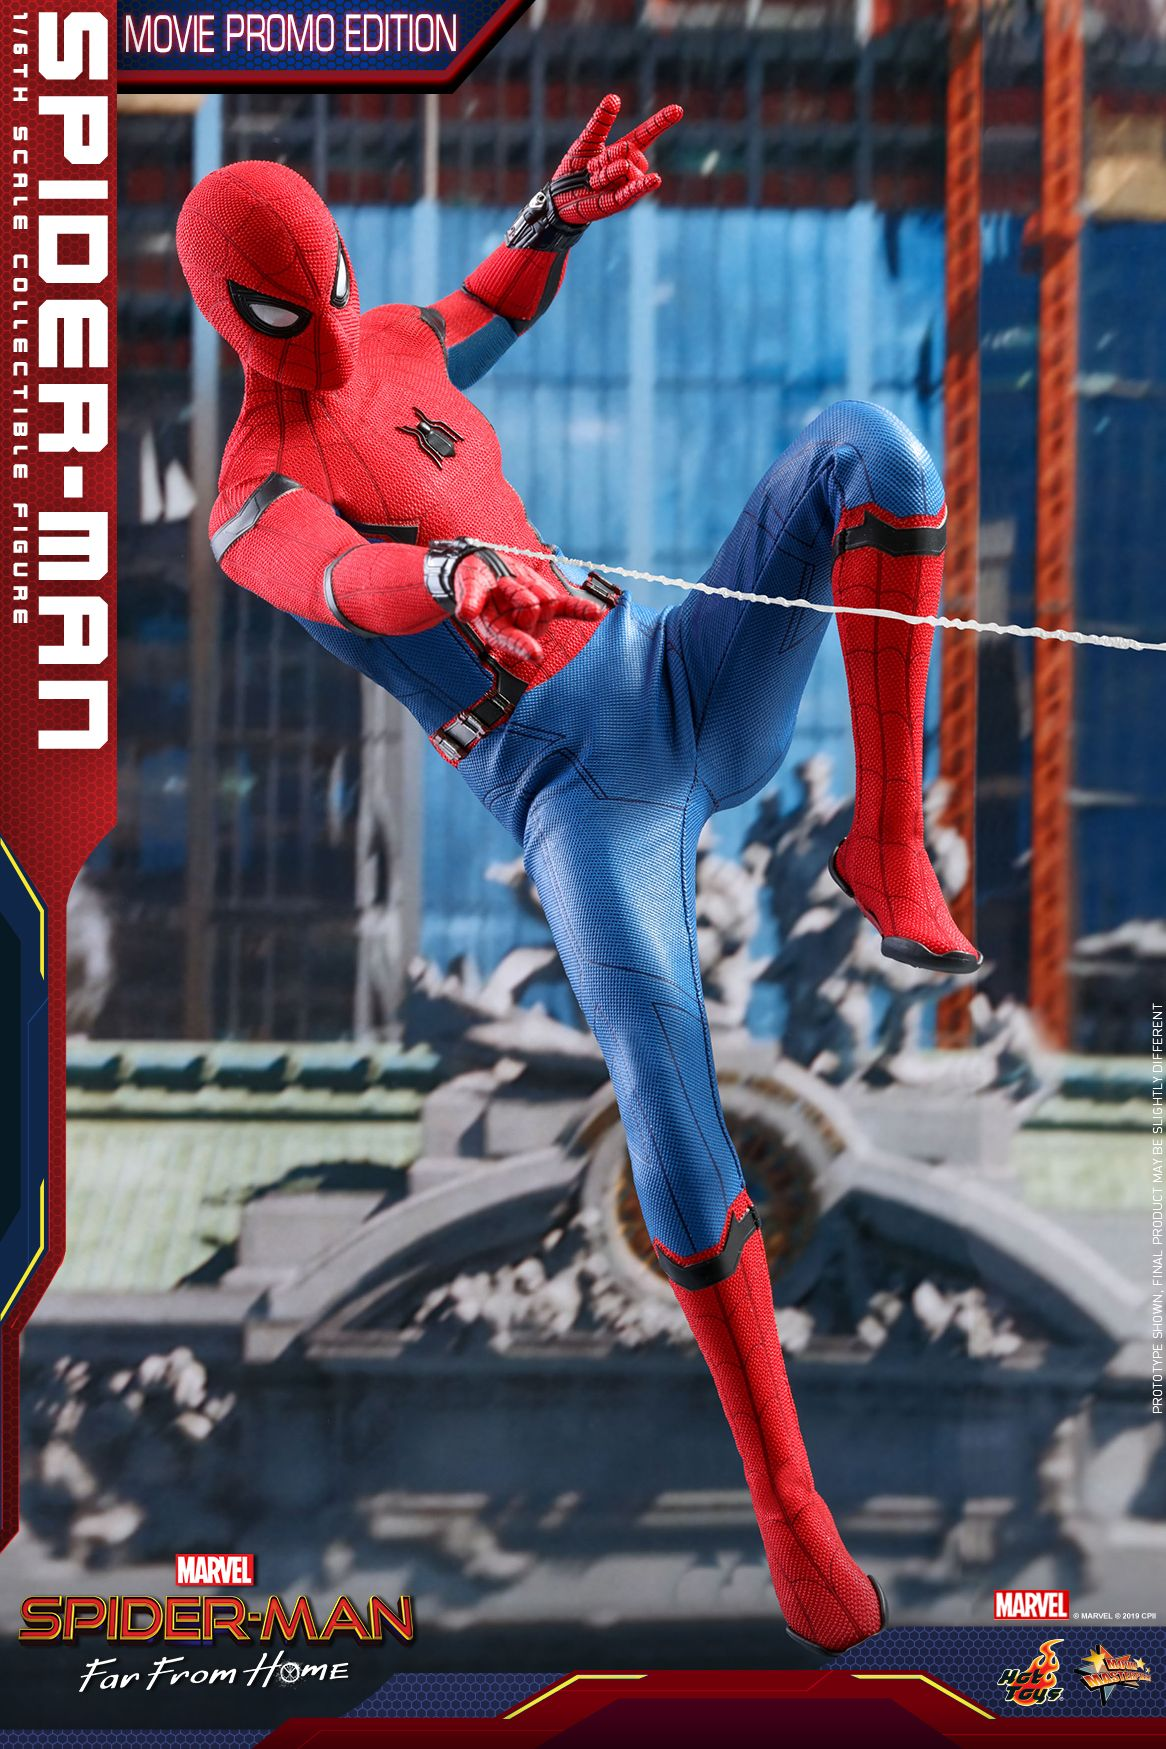 hot-toys-smffh-spider-man-movie-promo-edition-collectible-figure_pr1